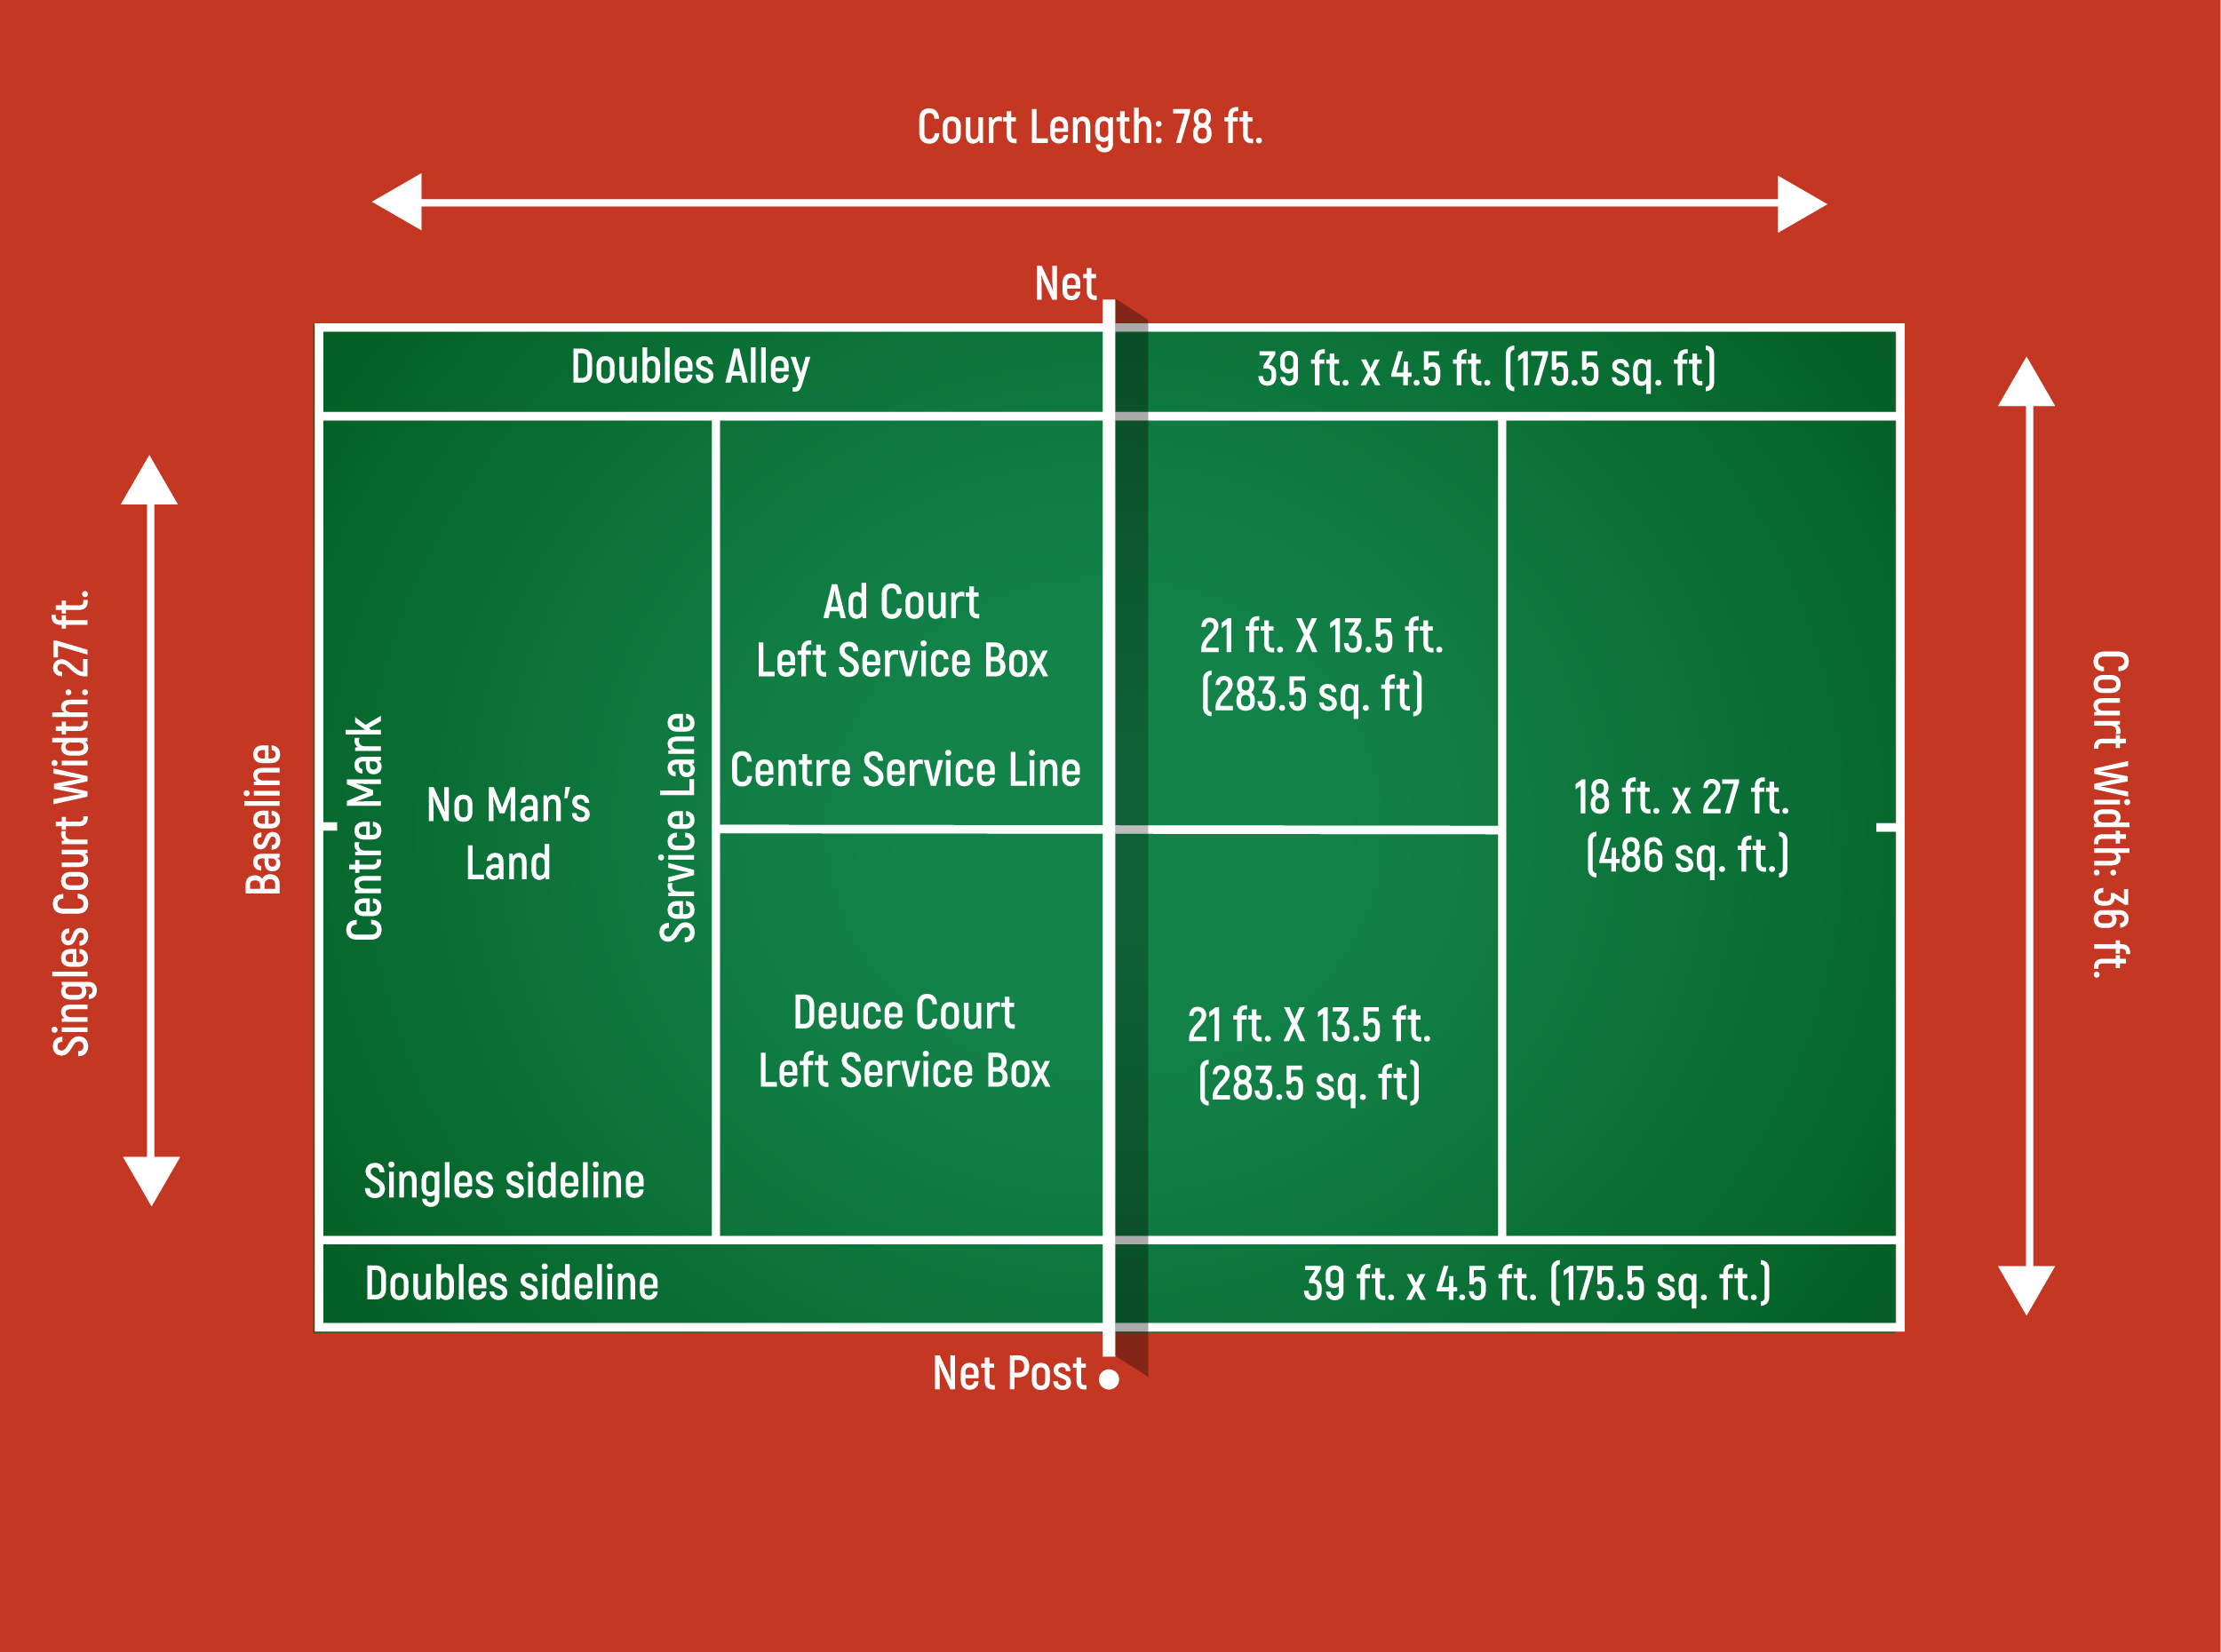 Tennis Court Dimensions How Big Is A Tennis Court Perfect Tennis Size Of Tennis Court Tennis Court Size Tennis Court